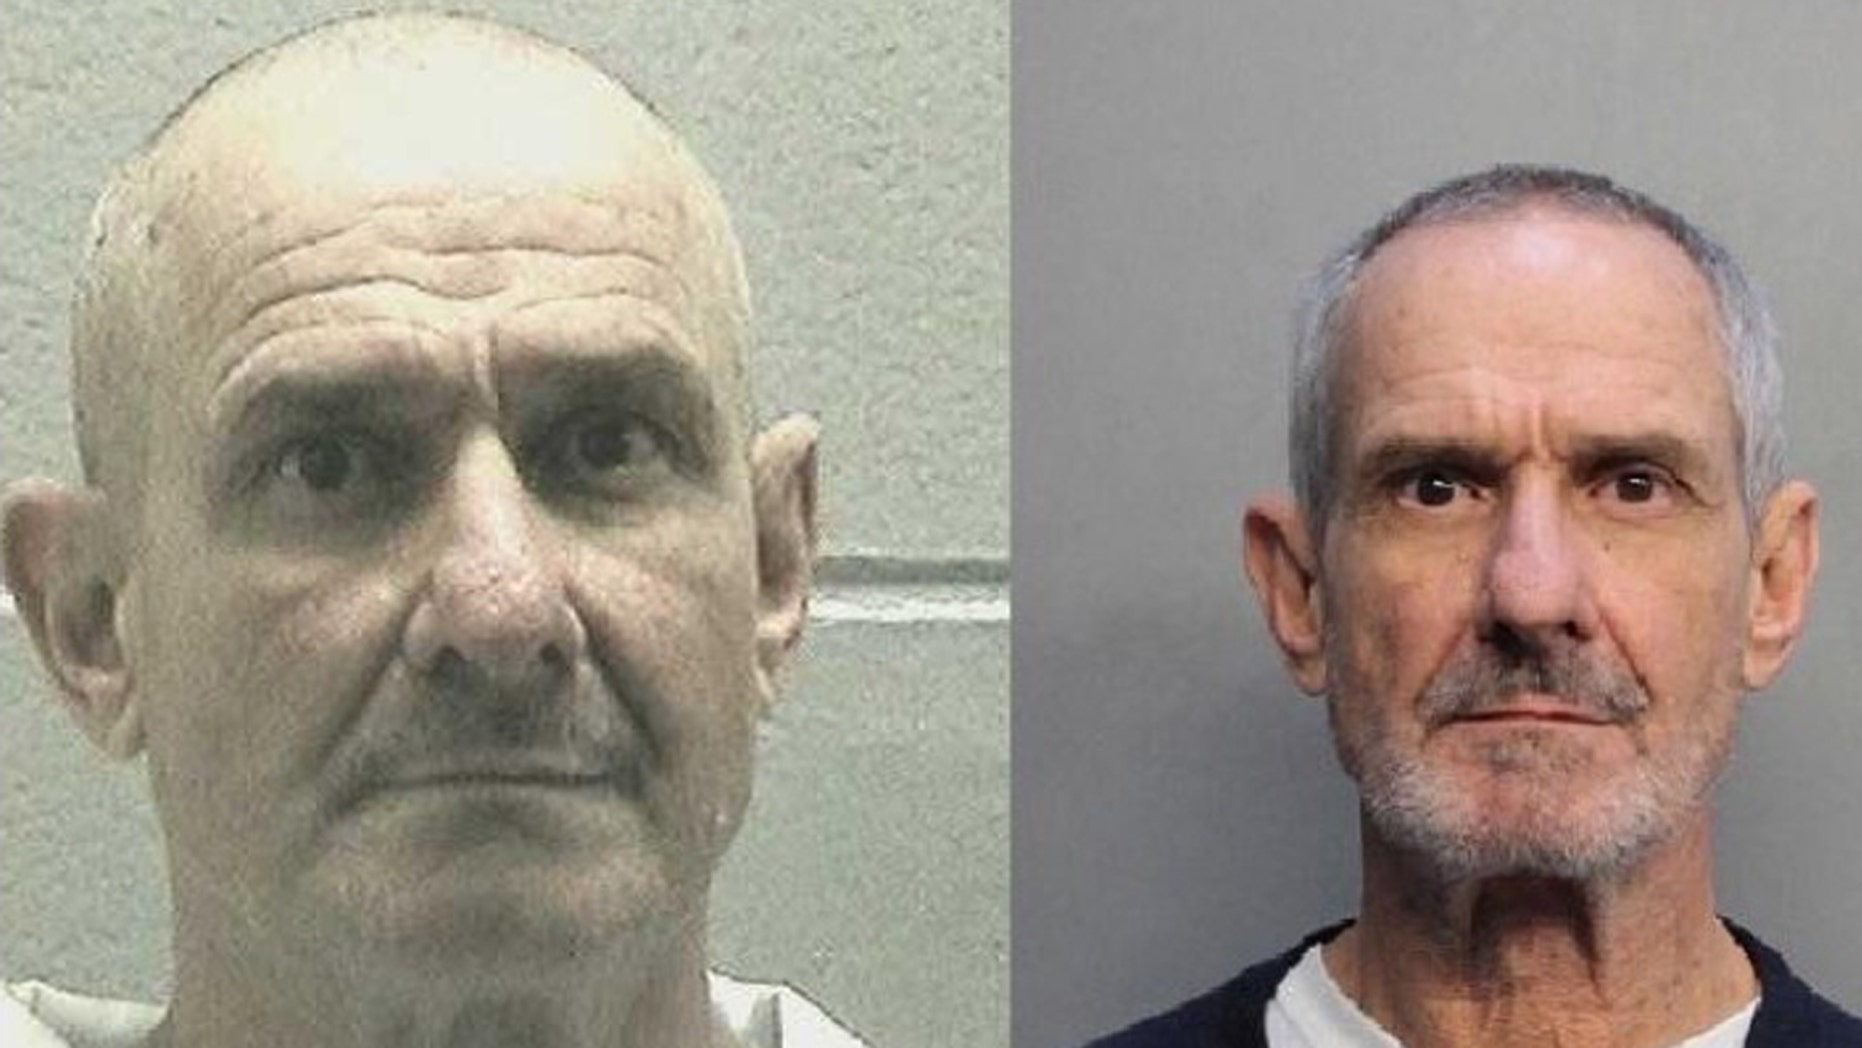 Raul Eduardo Prado (left) escaped a work detail in Augusta, Georgia on May 7. The man on the right claims he is the Prado's twin brother Jean and has been falsely arrested.